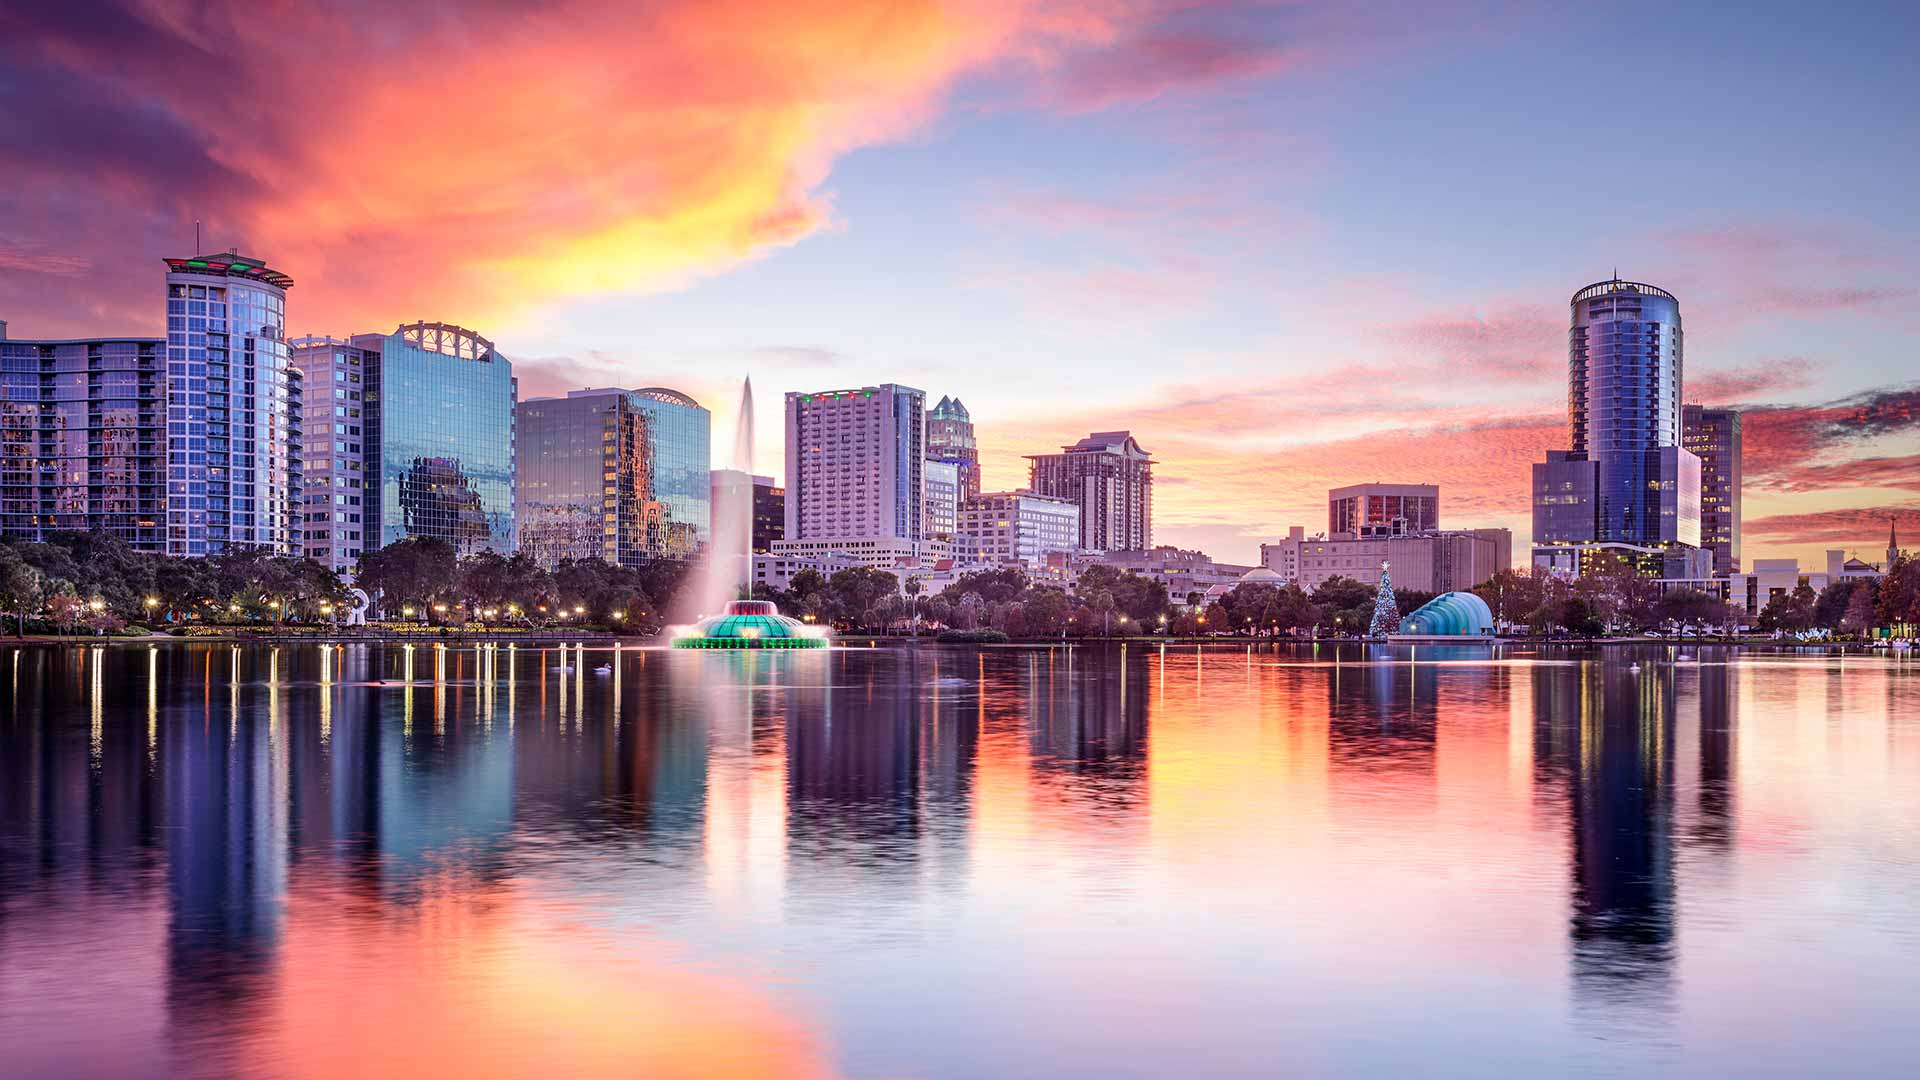 HIMSS Event Orlando